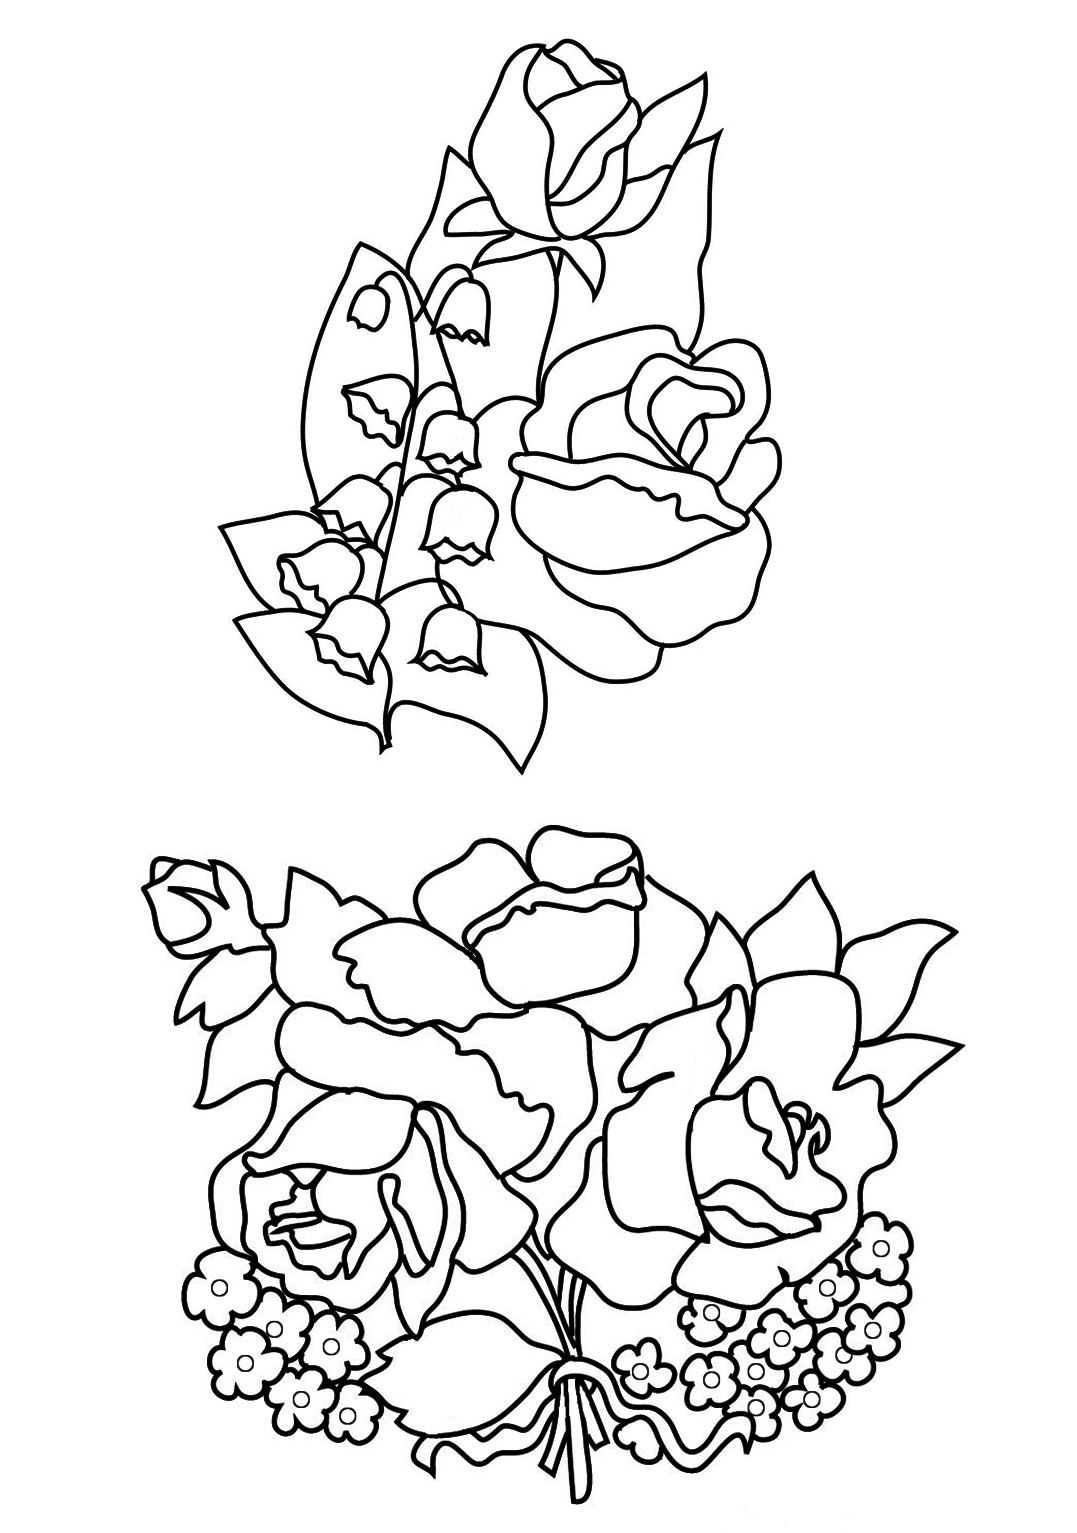 Flower Bud Preschool Coloring Pages